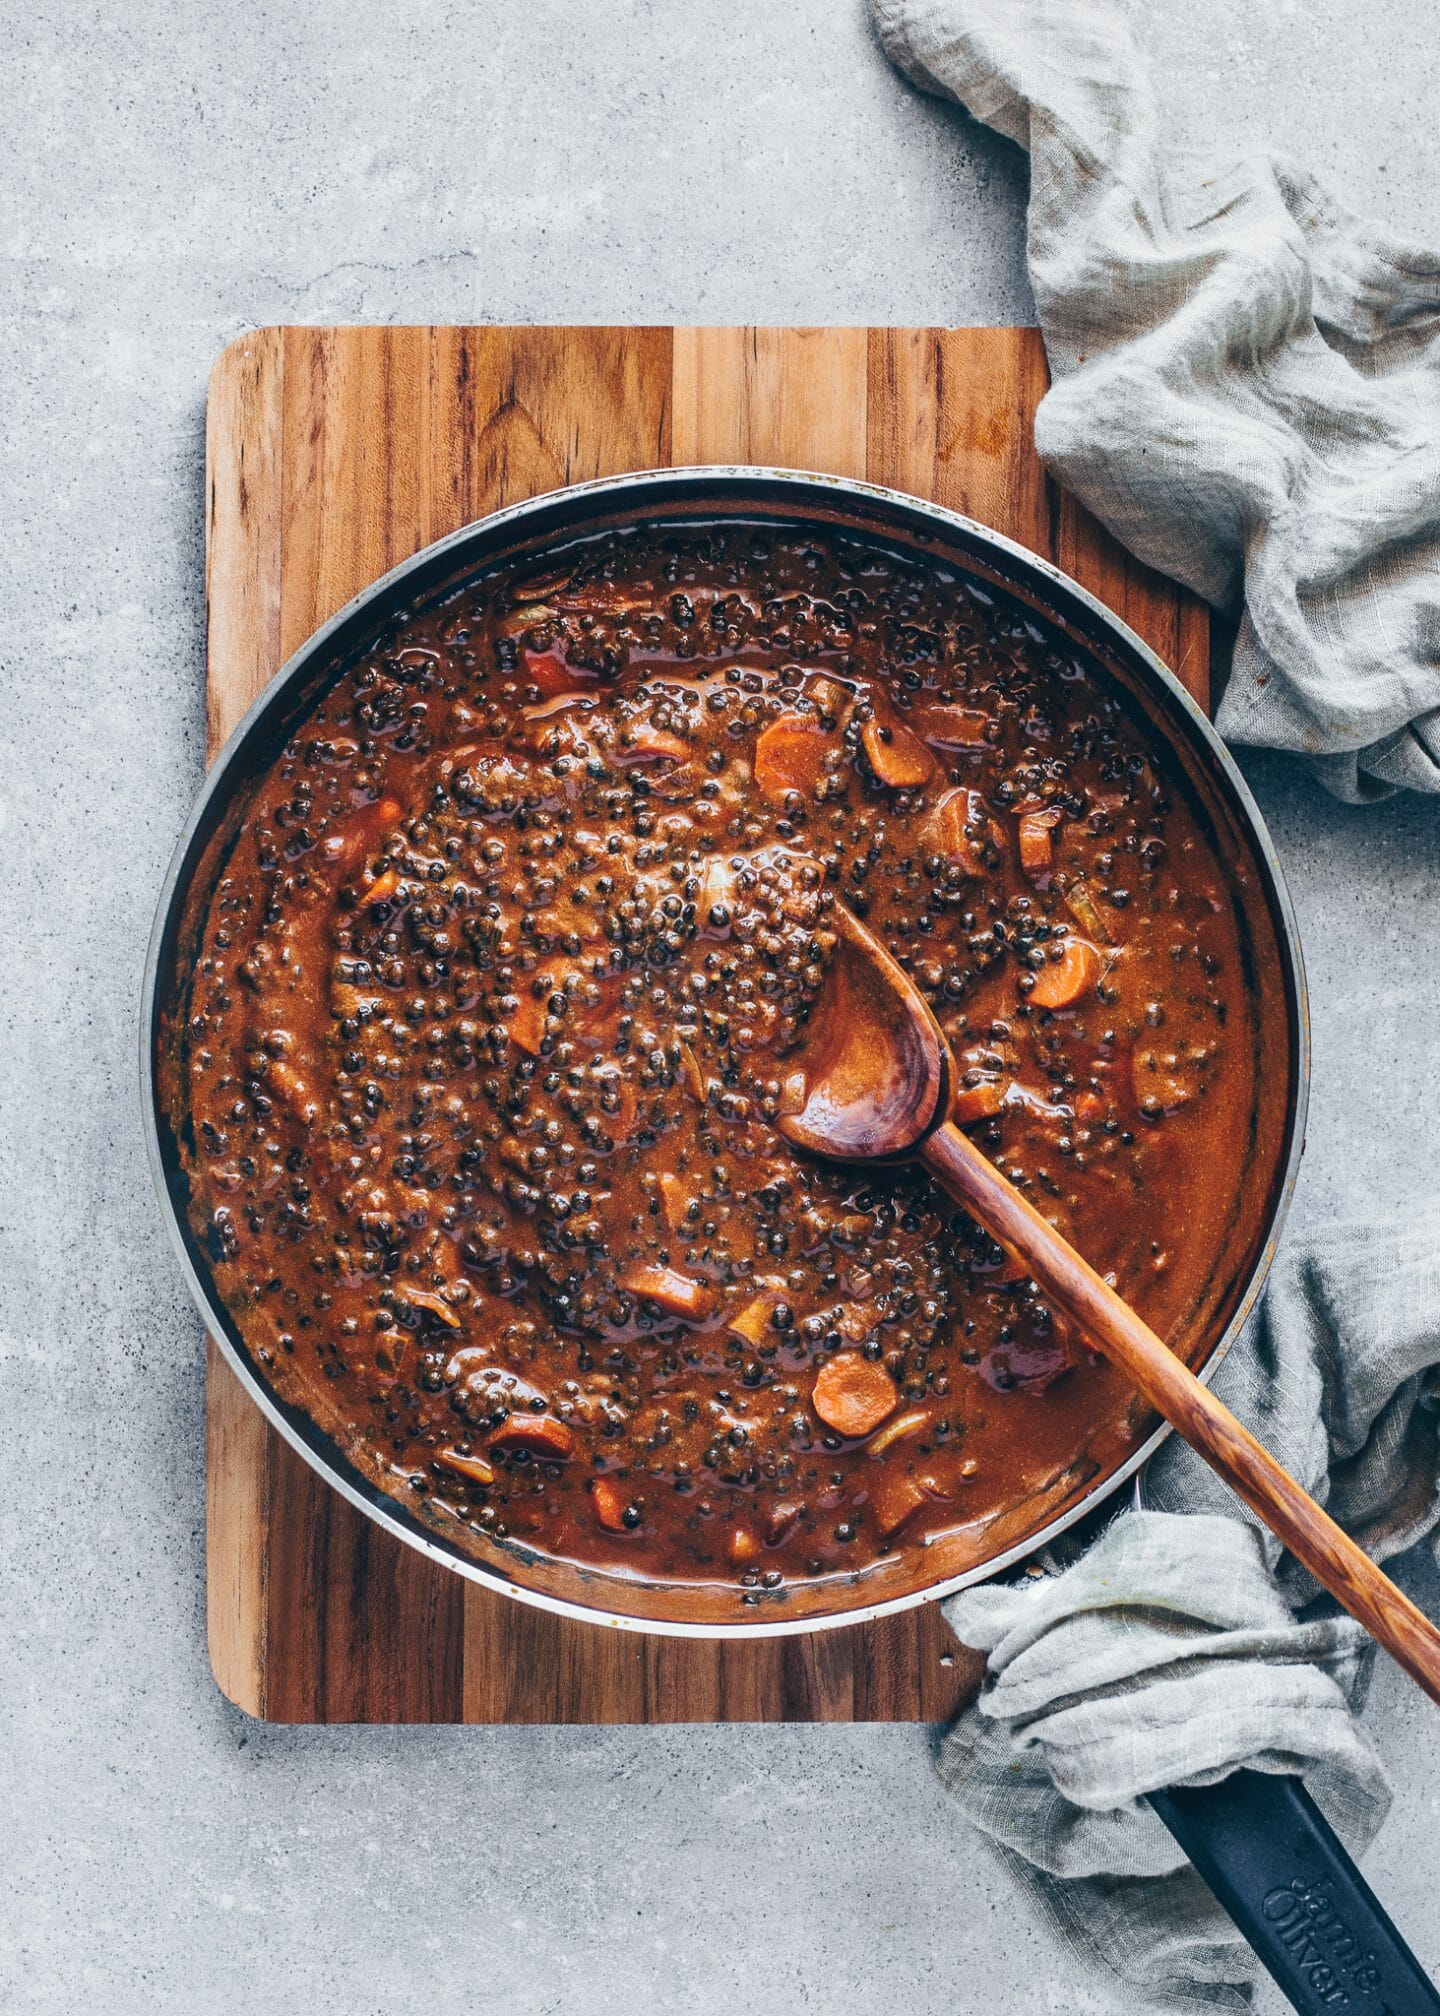 Vegan Indian Dal Makhani with coconut milk, vegetables, and black beluga lentils